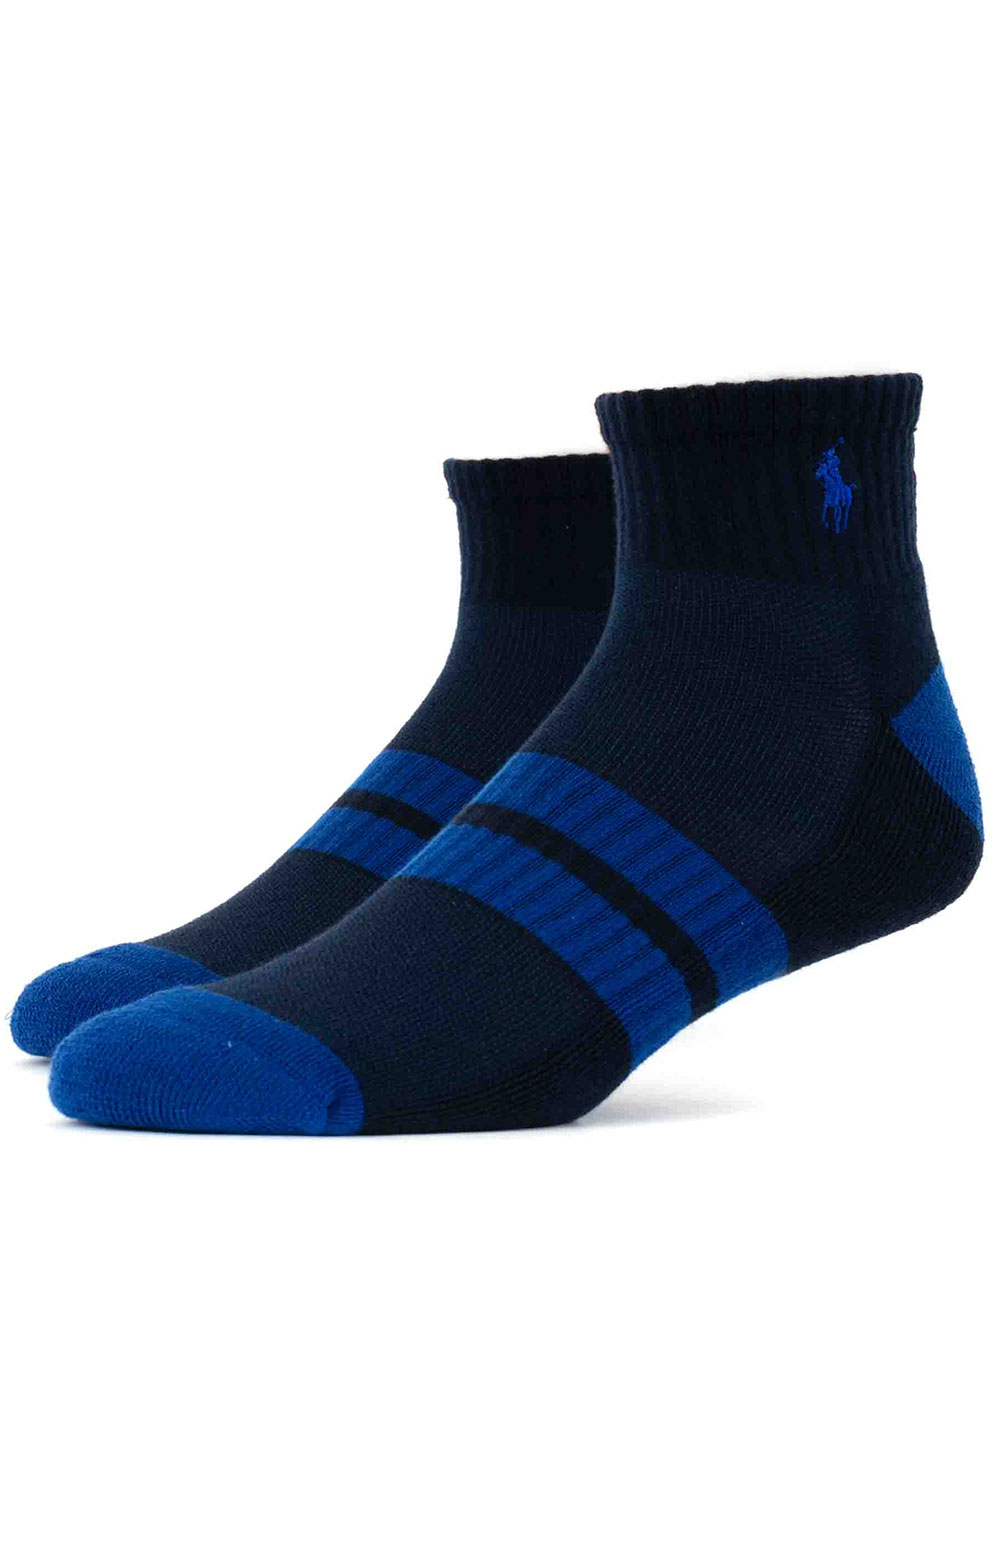 Colorblock Cushioned Quarter Socks - 6 Pack 4